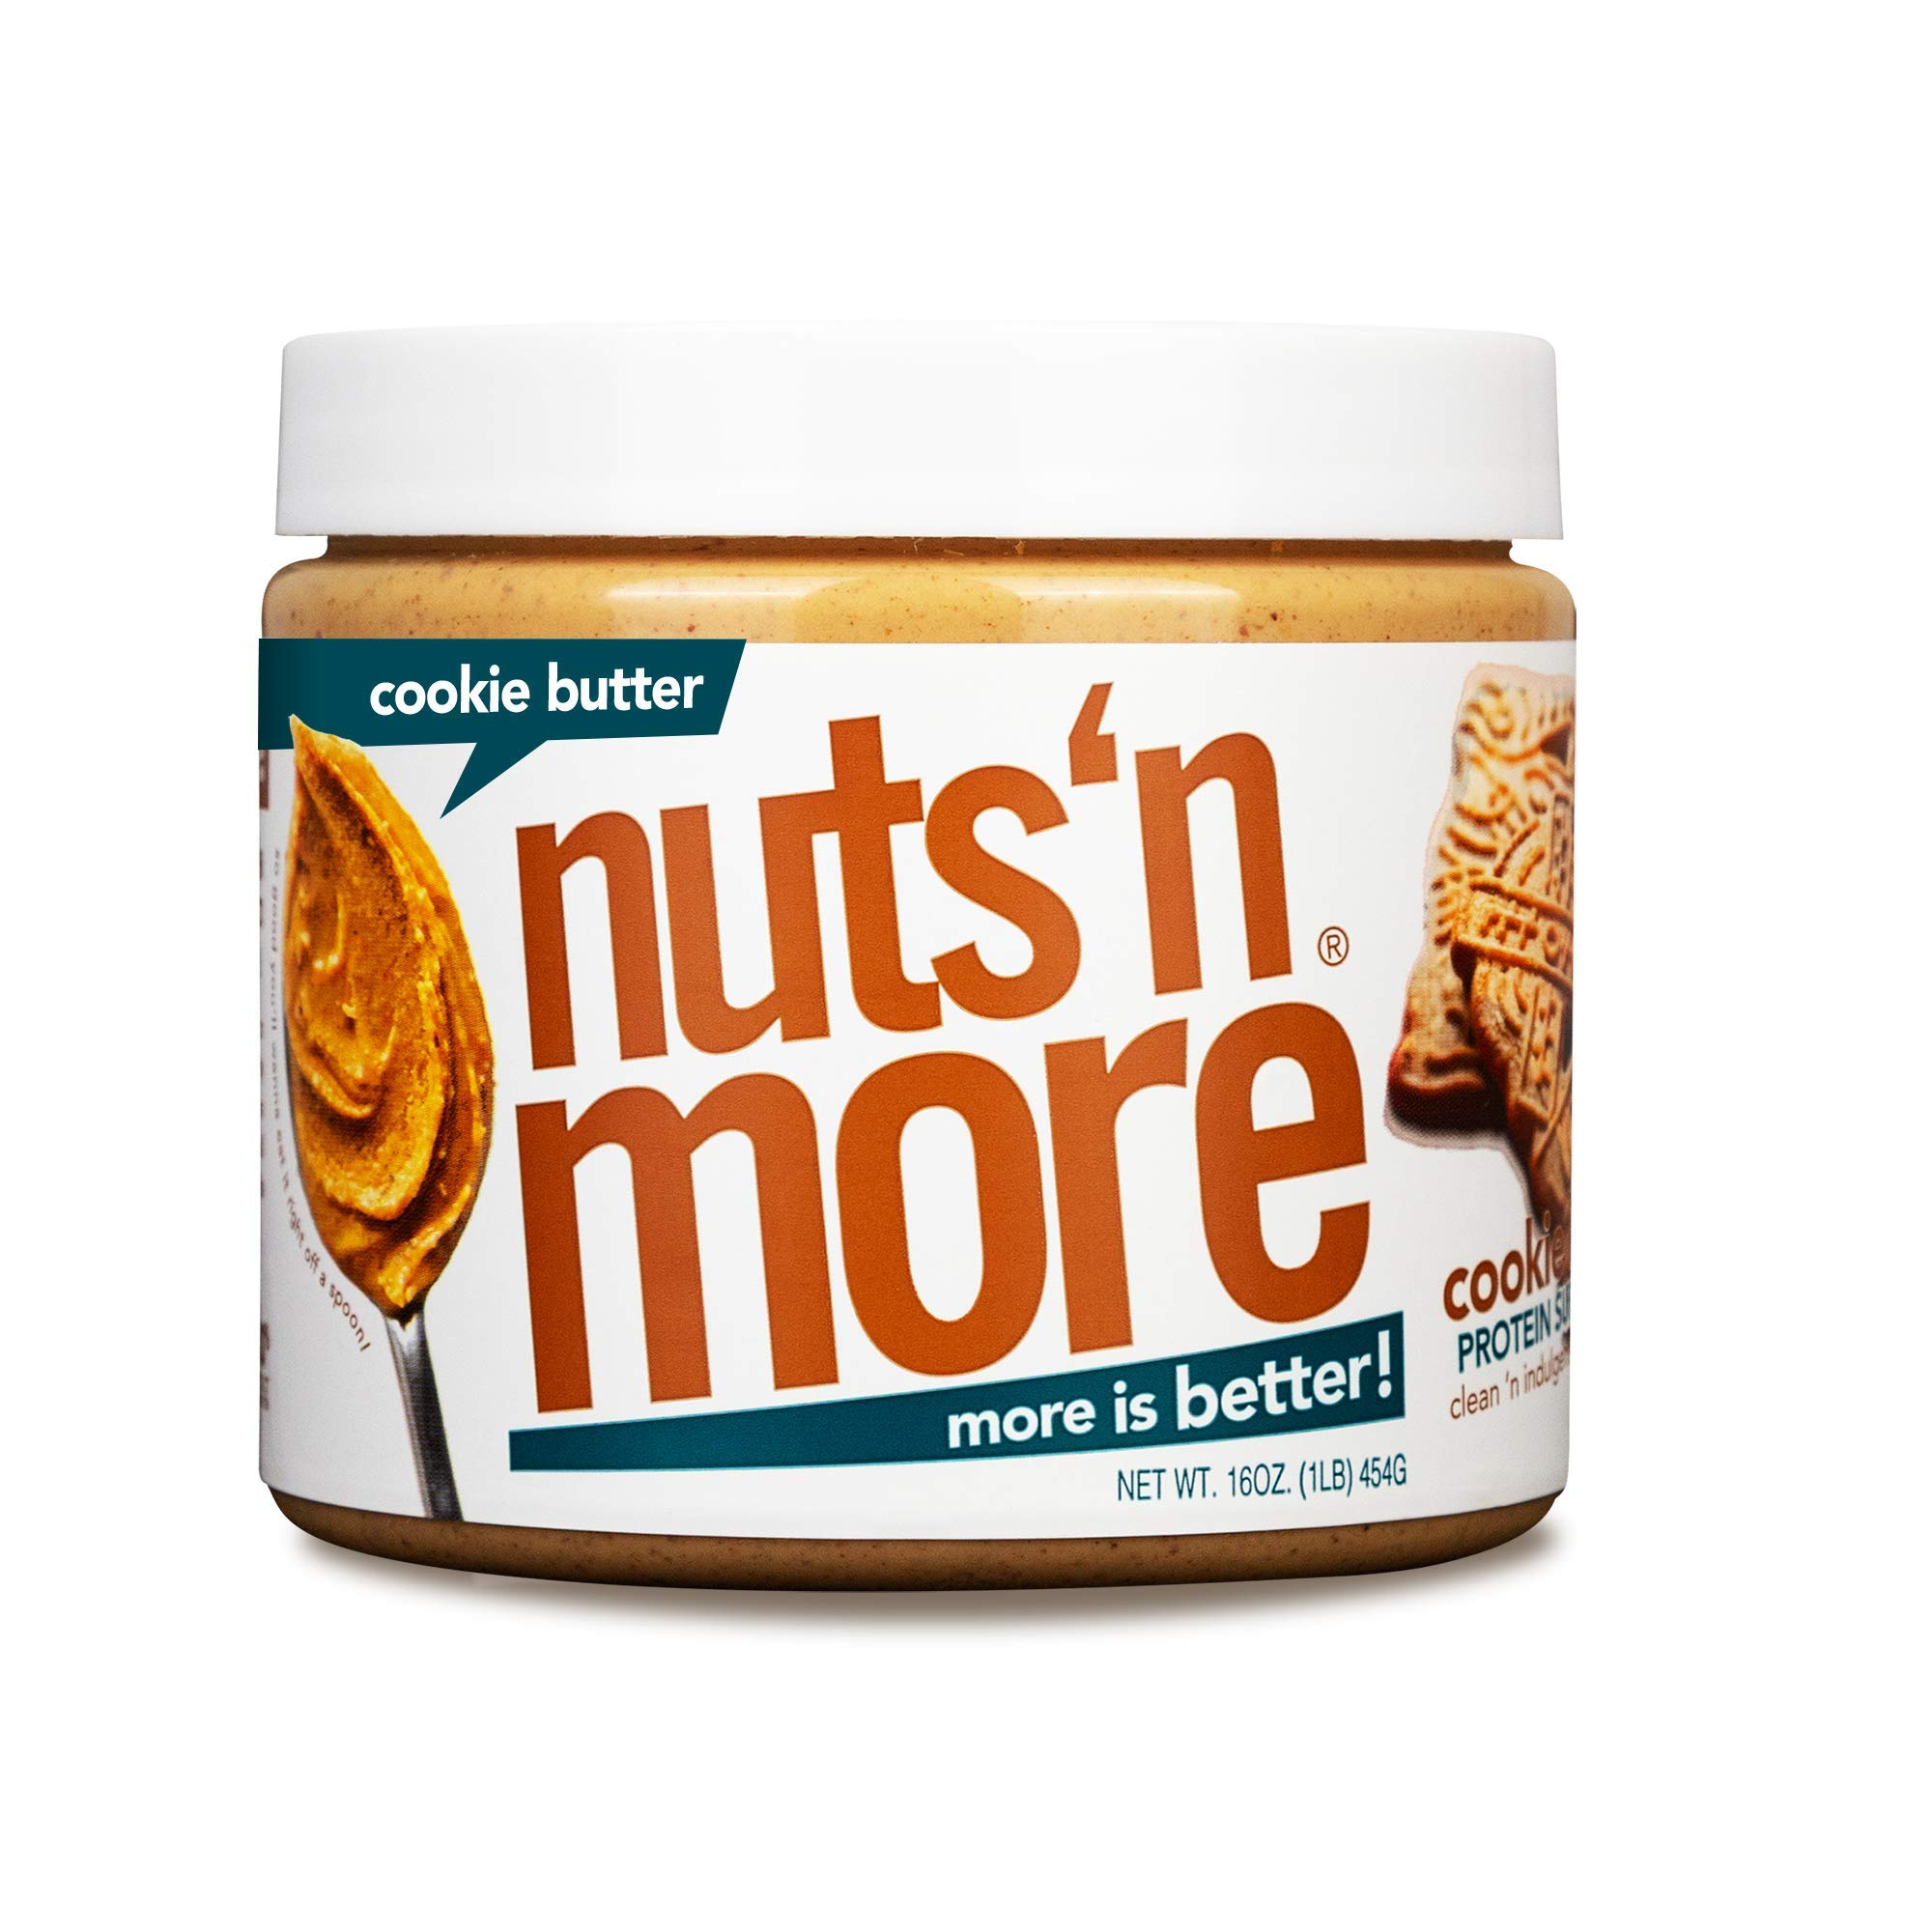 Nuts 'N More Cookie Butter Peanut Butter Spread, All Natural Keto Snack, Low Carb, Low Sugar, Gluten Free, Non-GMO, High Protein Flavored Nut Butter (16 oz Jar)